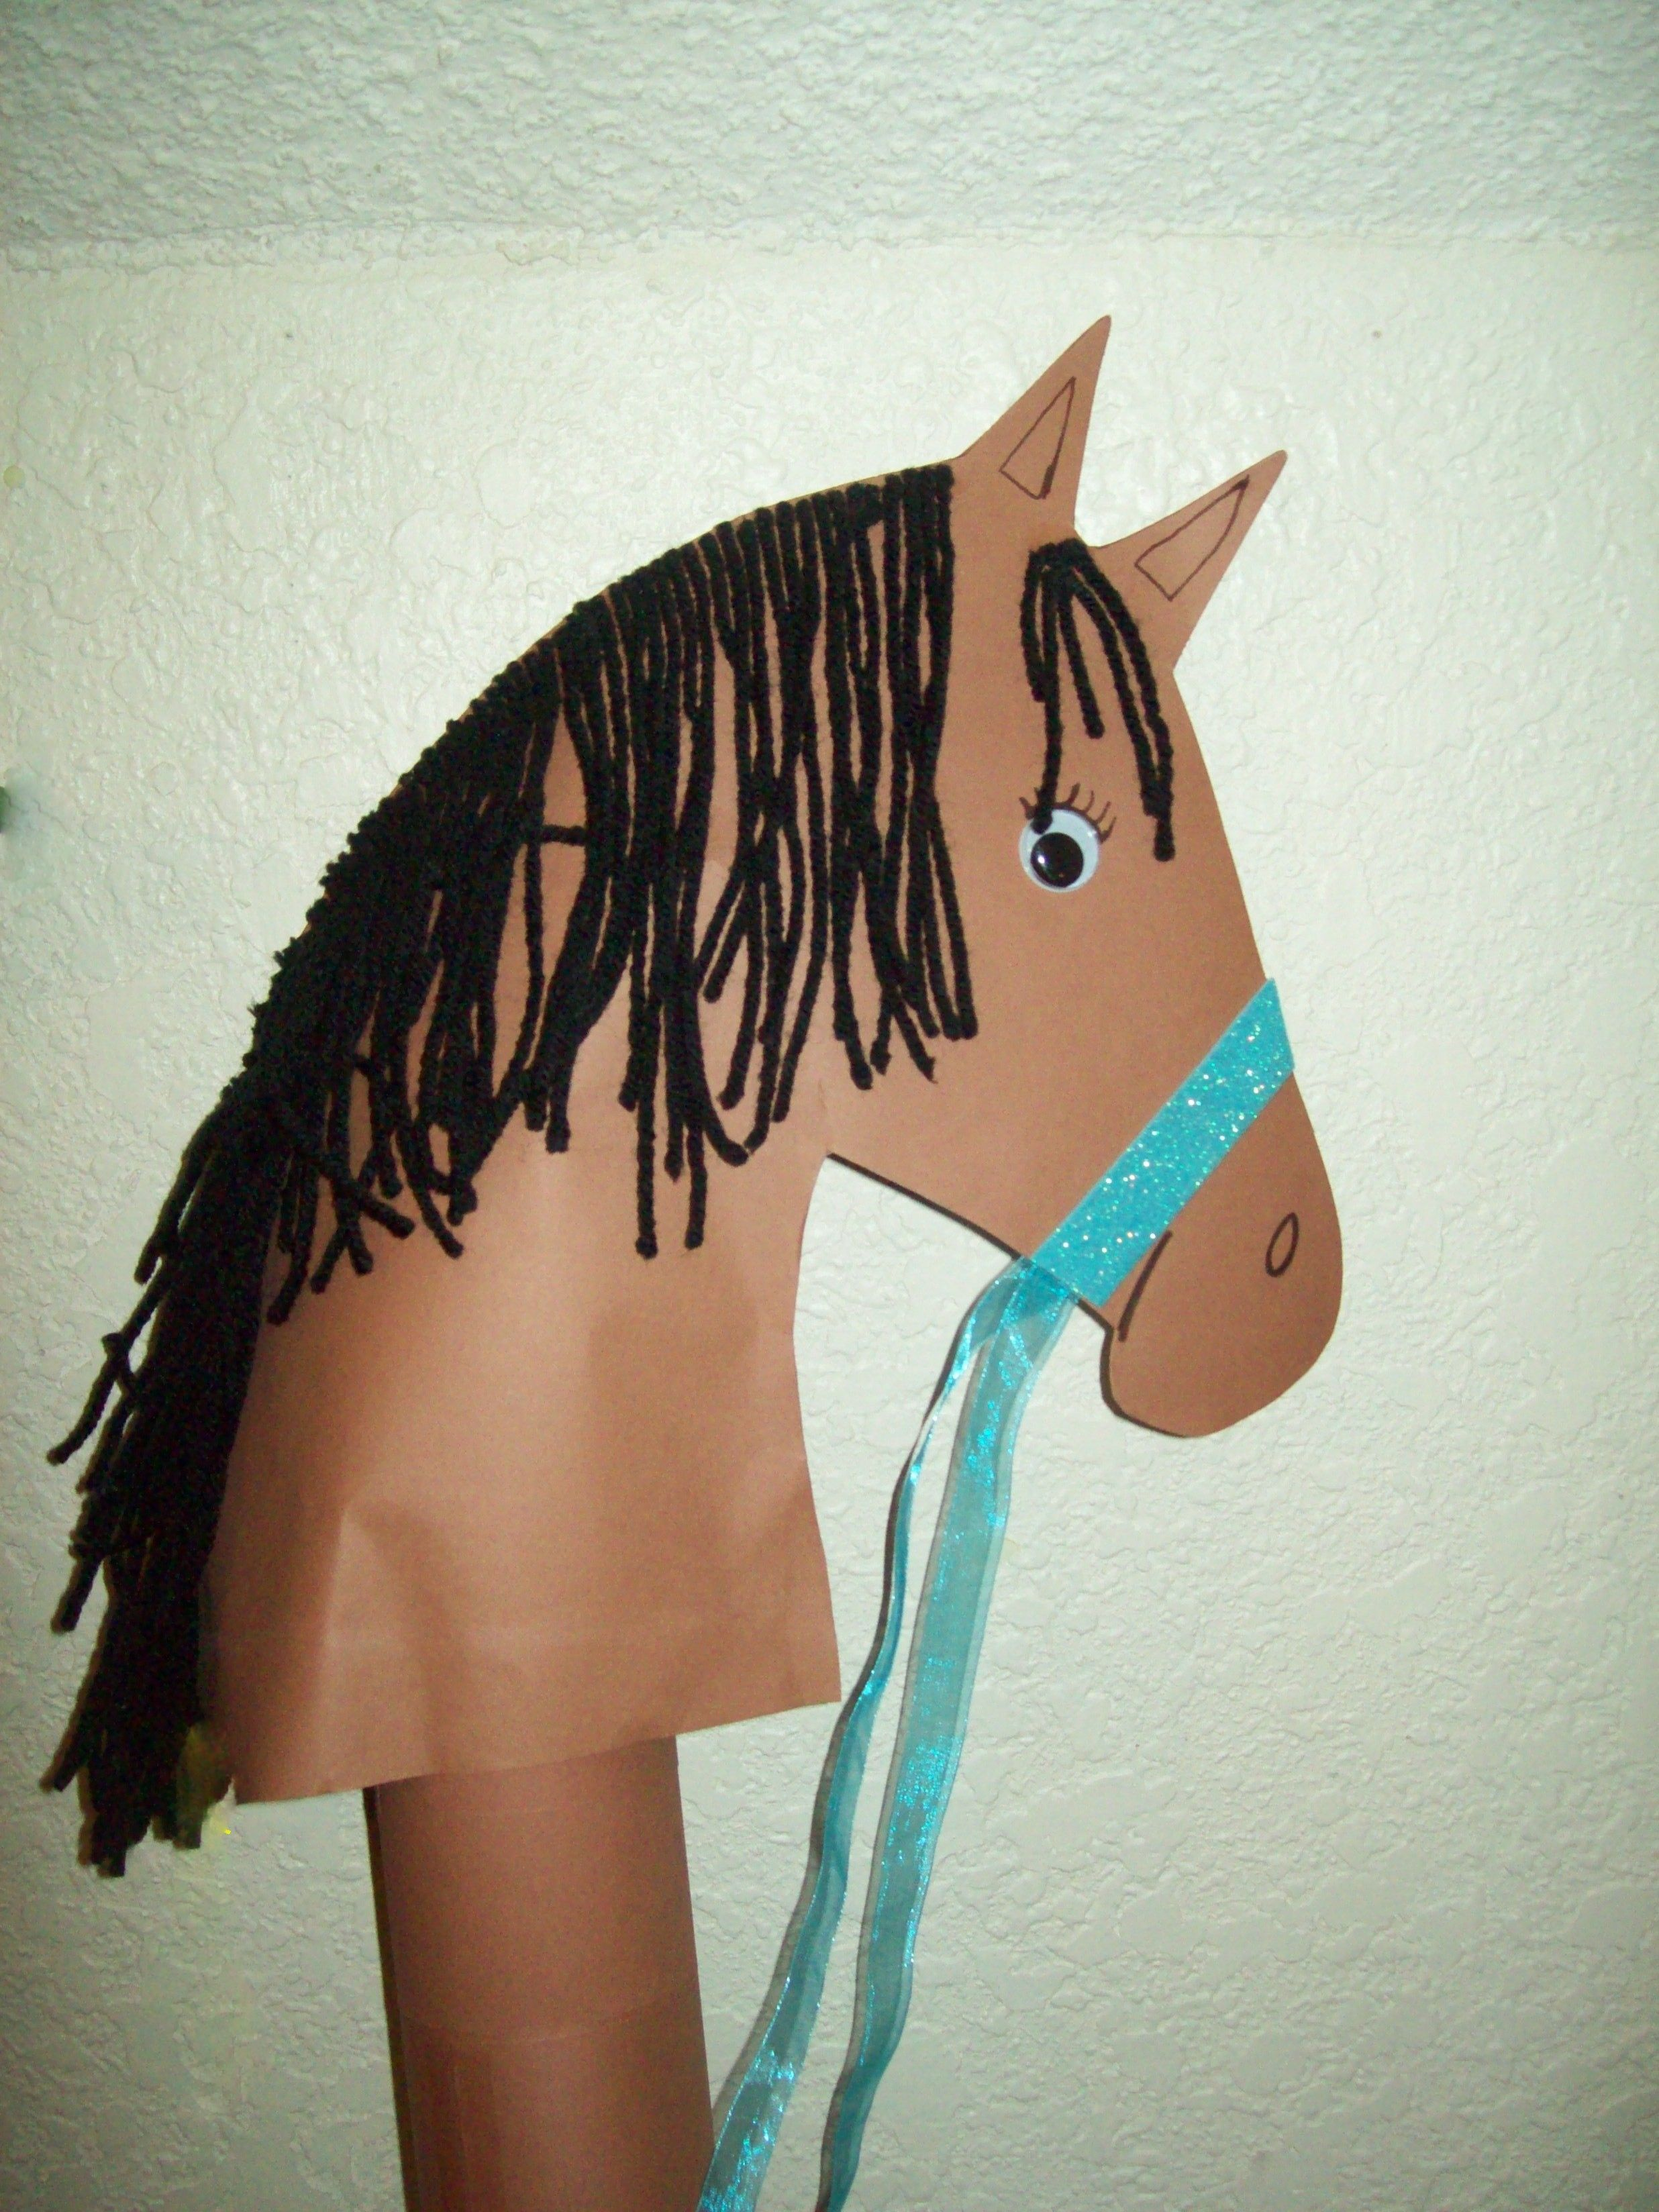 Horse Craft Diy With Construction Paper Yarn Google Eyes Printed